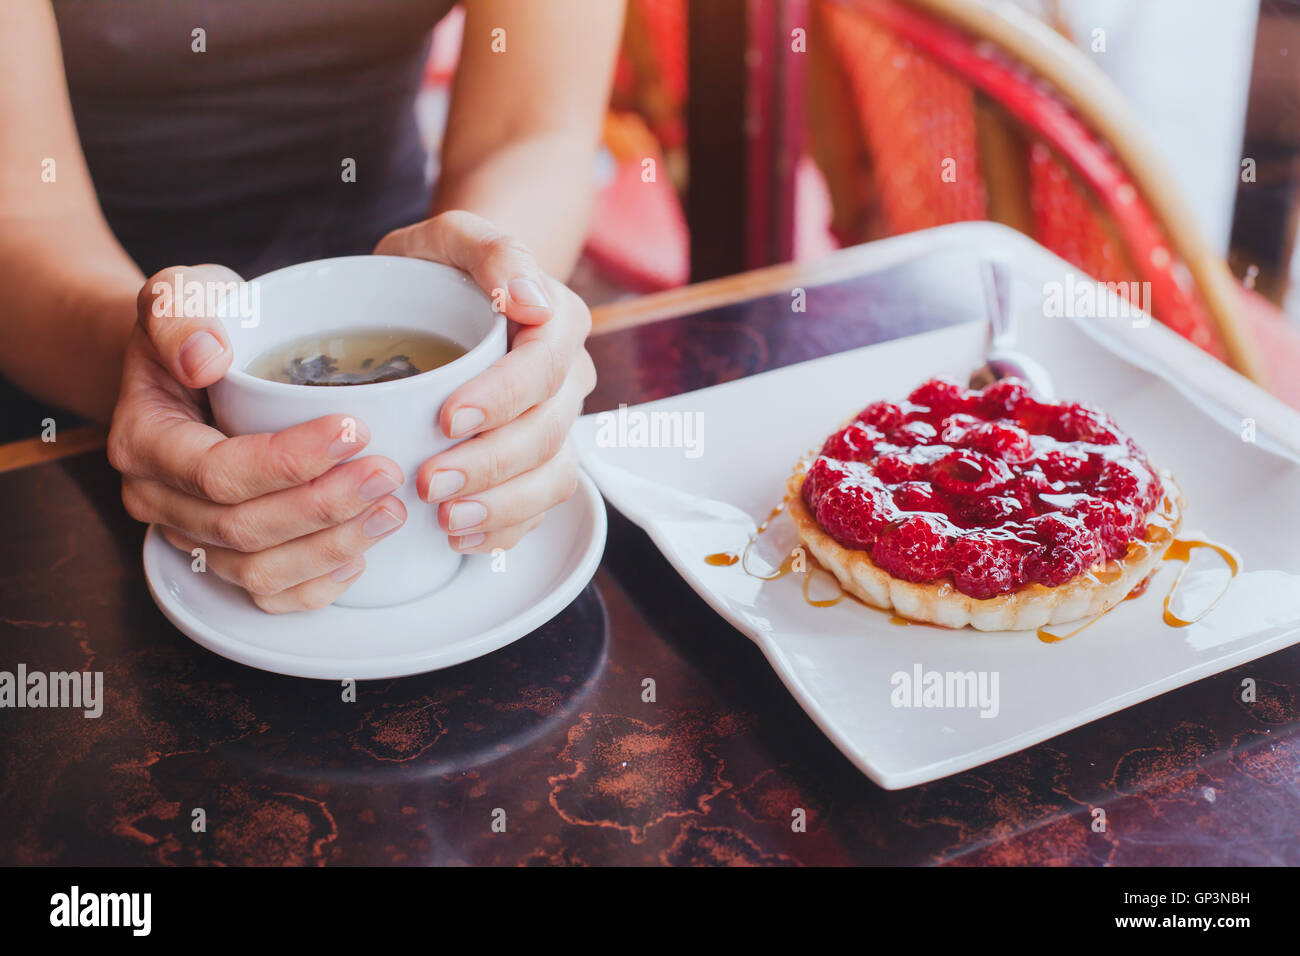 drinking tea with sweet dessert in cafe, close up of hands with cup and fruit cake - Stock Image